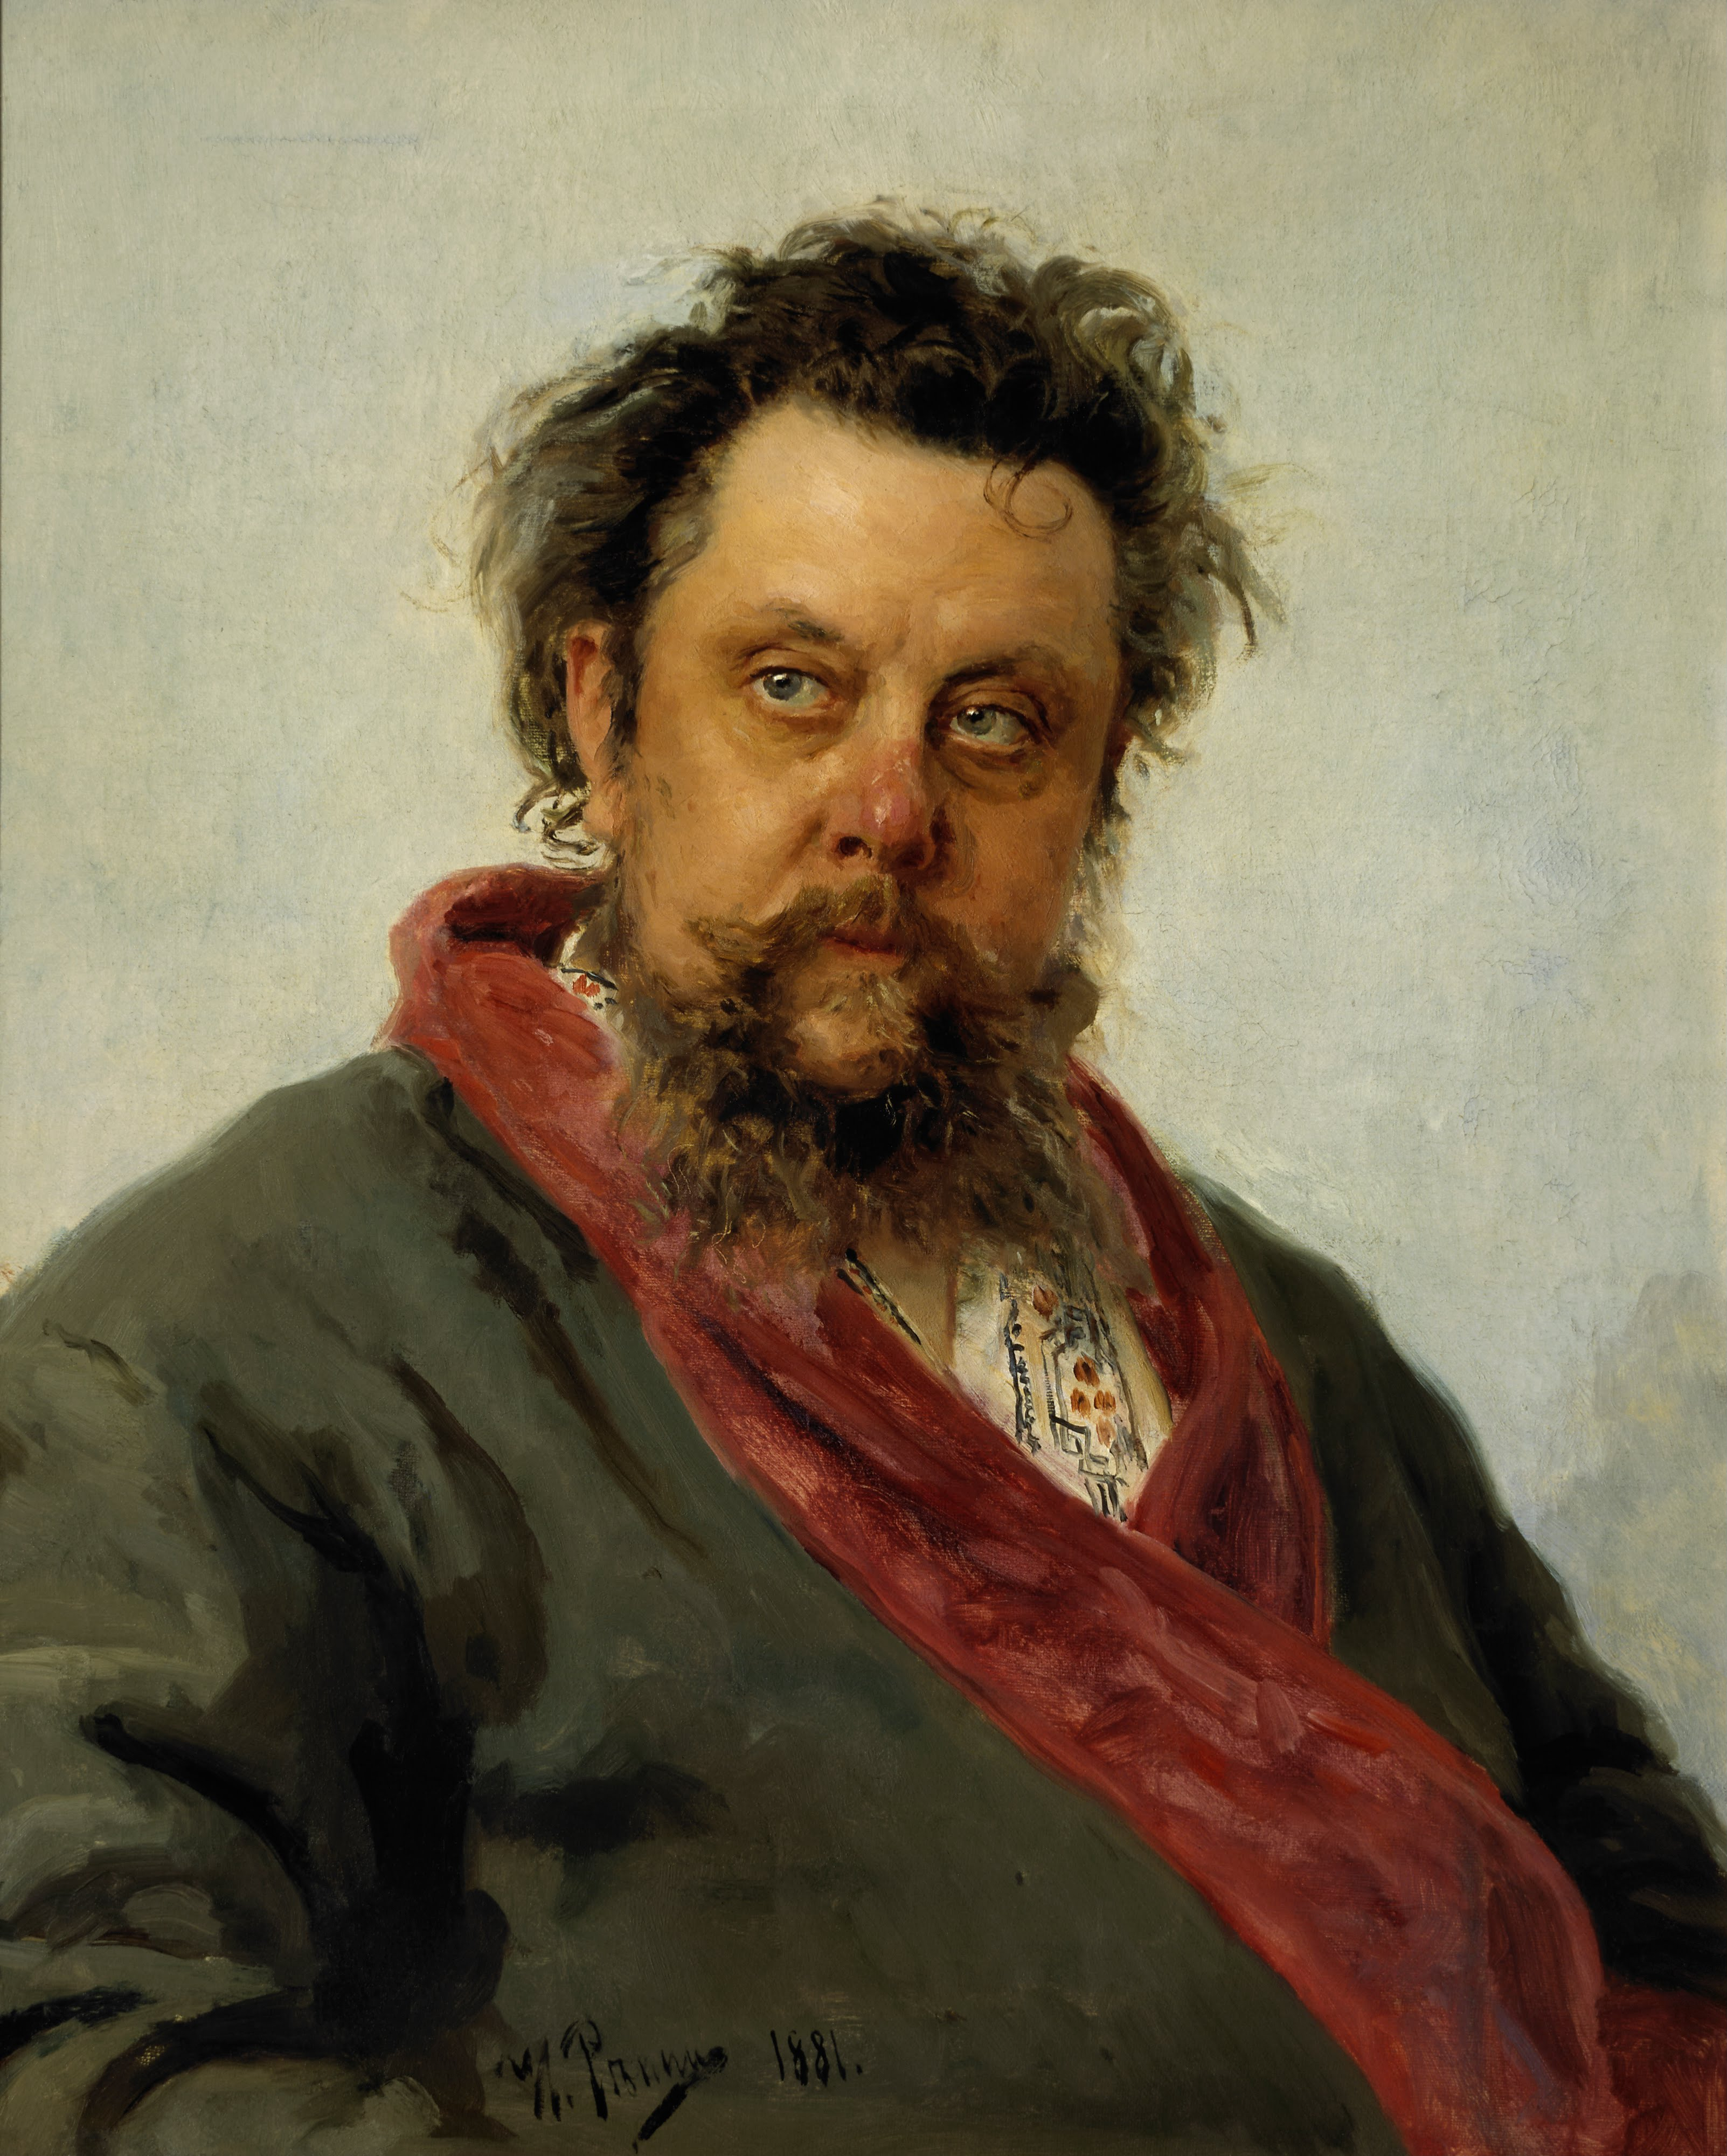 Modest Mussorgsky Modest Mussorgsky Wikipedia the free encyclopedia